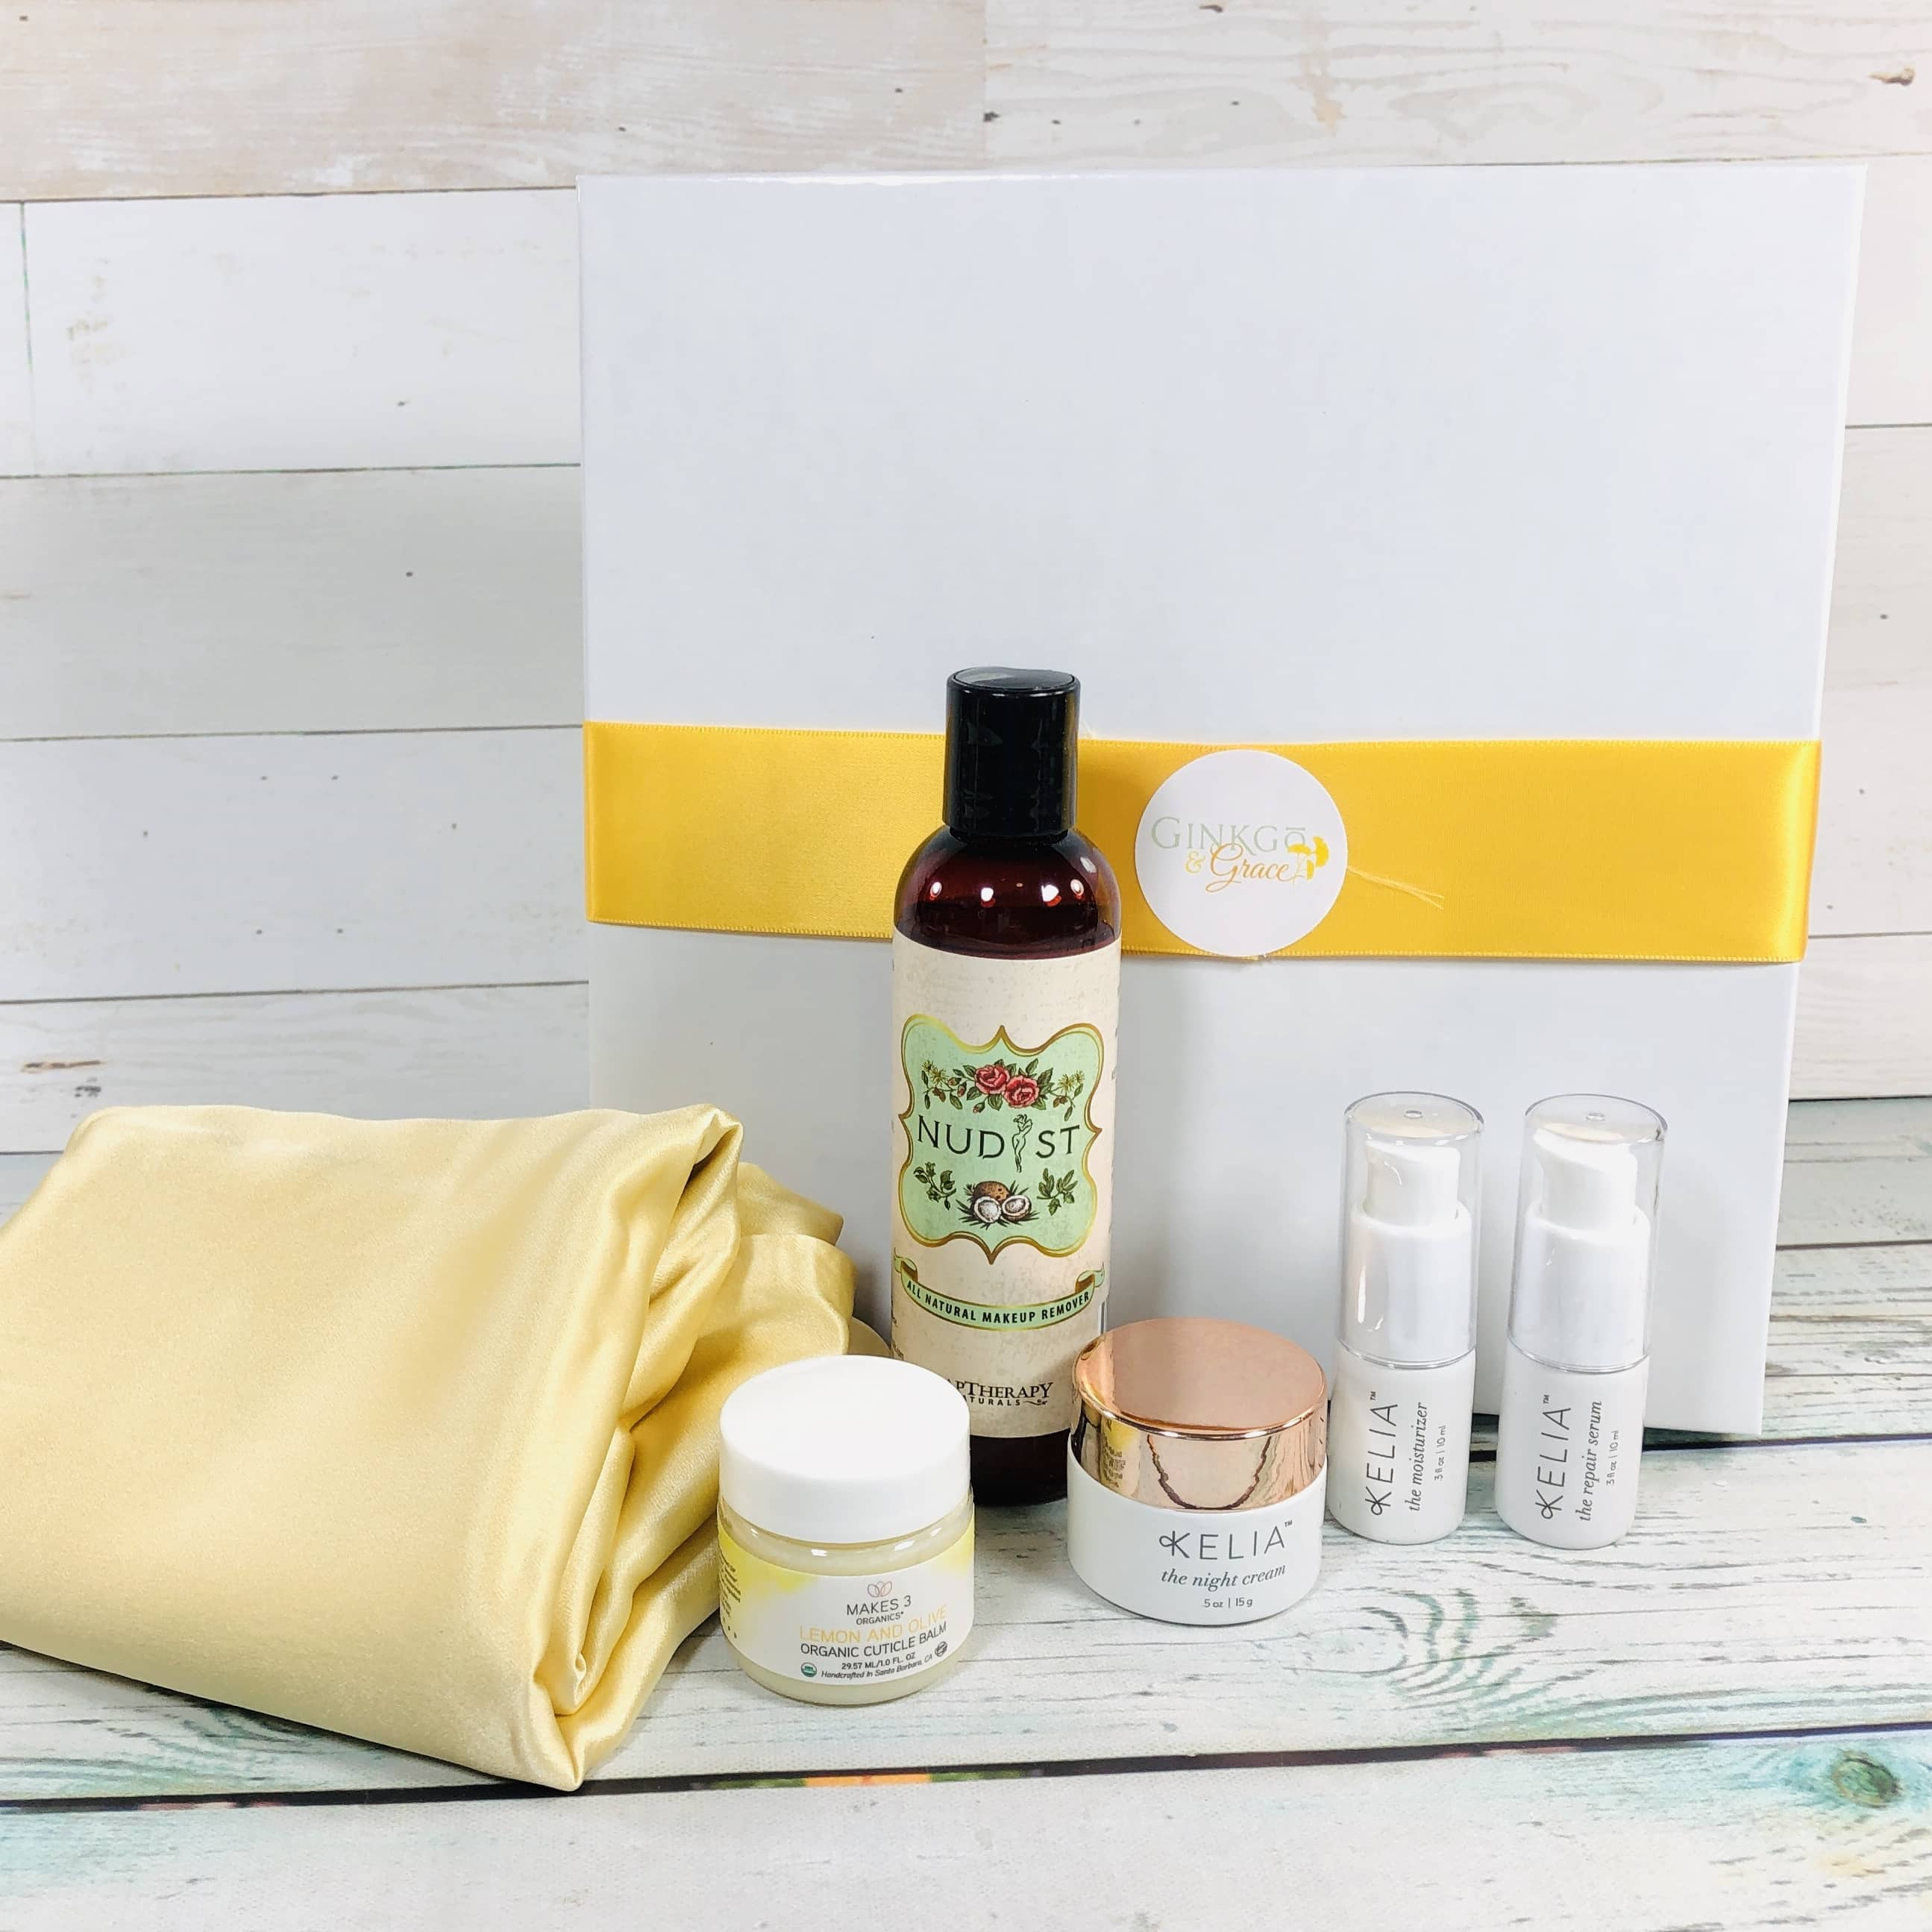 Ginkgo & Grace January 2019 Subscription Box Review